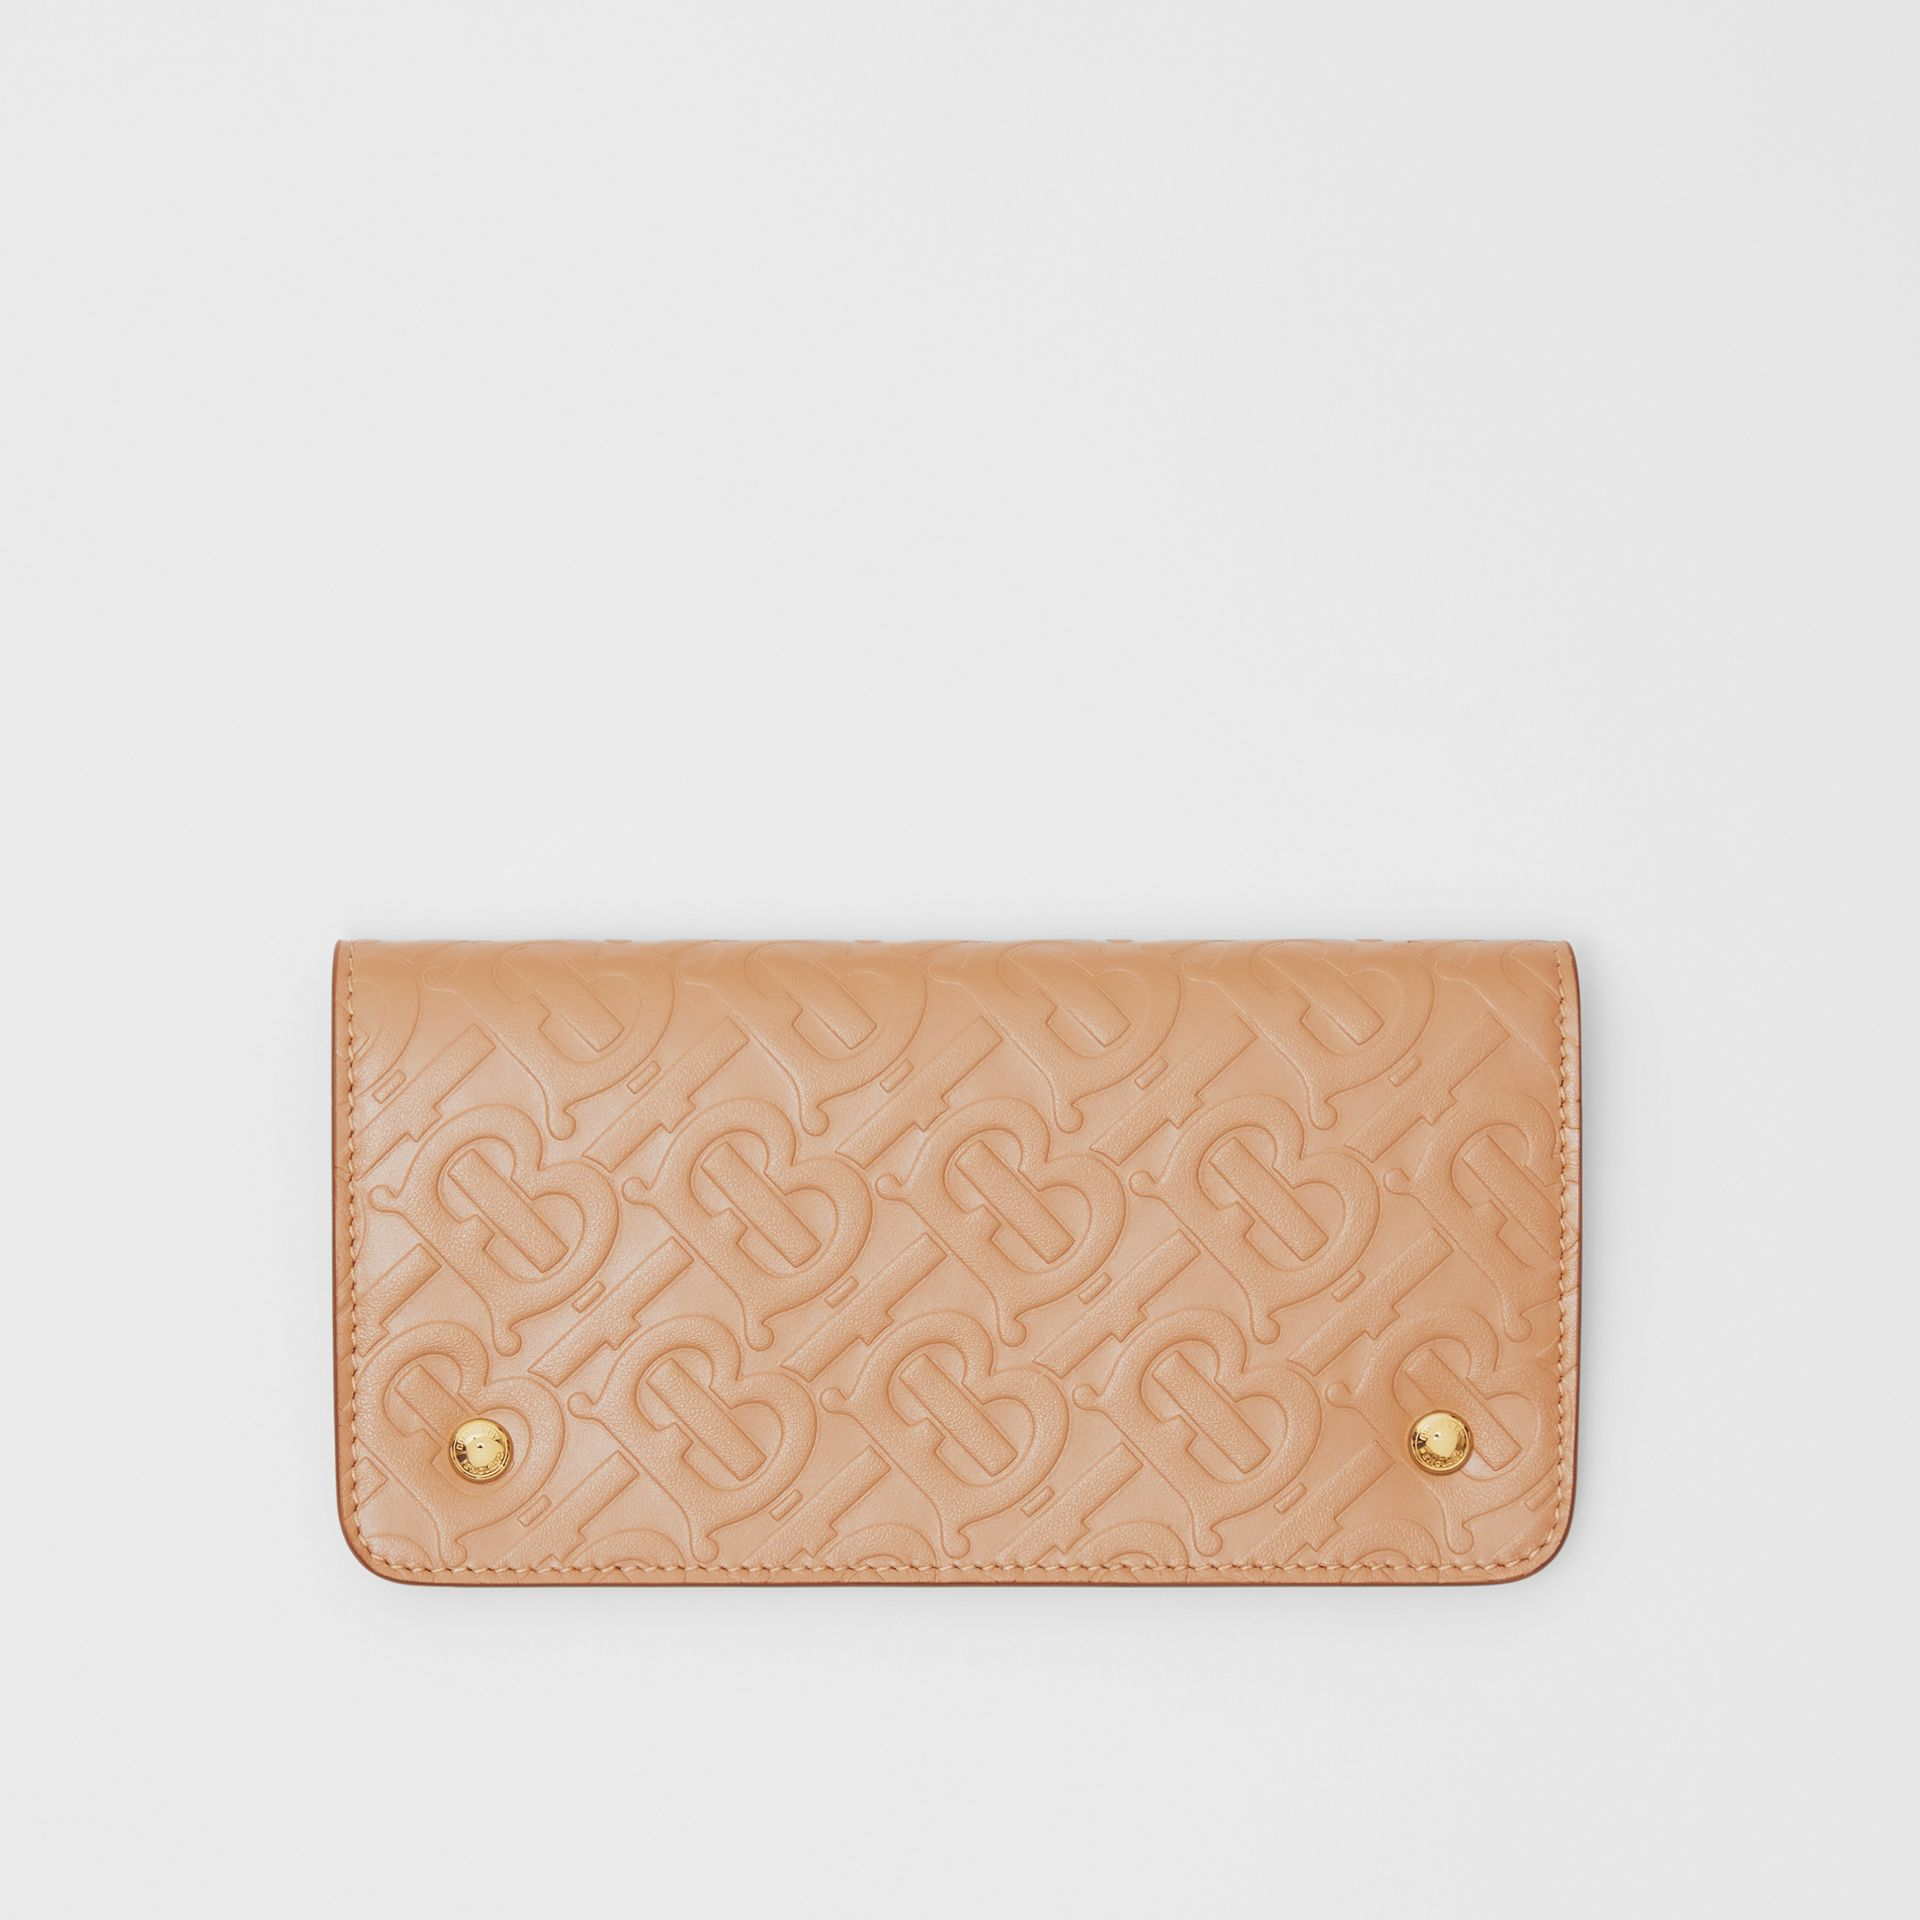 Monogram Leather Phone Wallet in Light Camel - Women | Burberry - gallery image 0